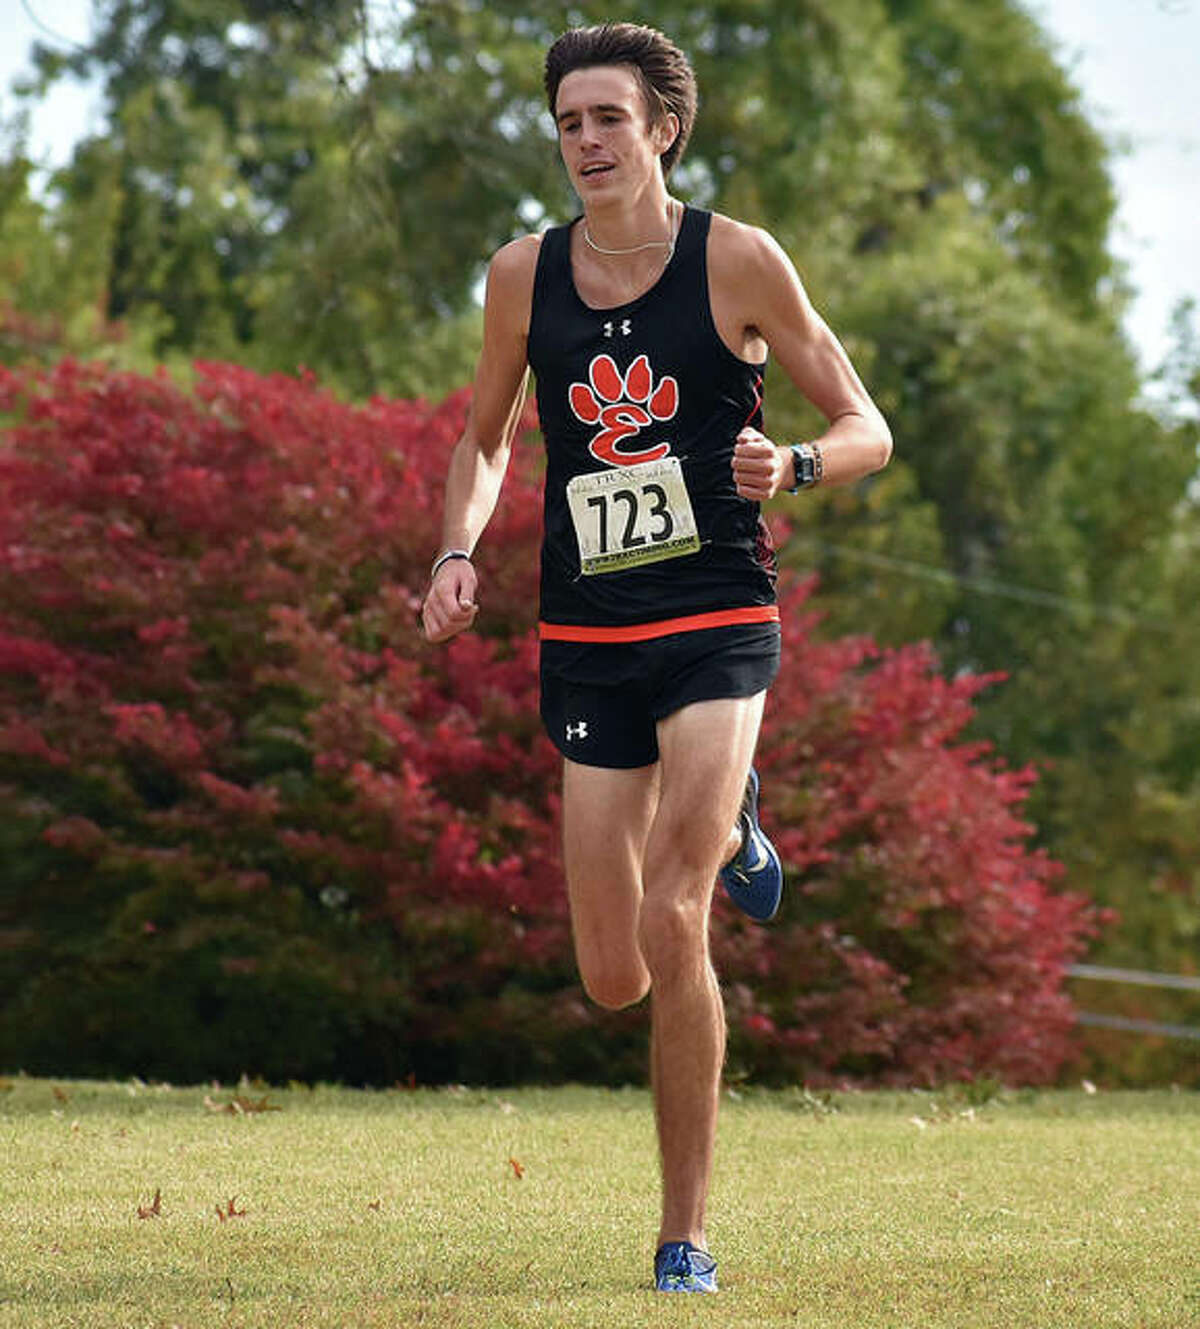 Edwardsville's Ryan Watts runs alone on the lead to finish first in the SWC Meet on Saturday at Clinton Hills Conservation Park in Swansea.